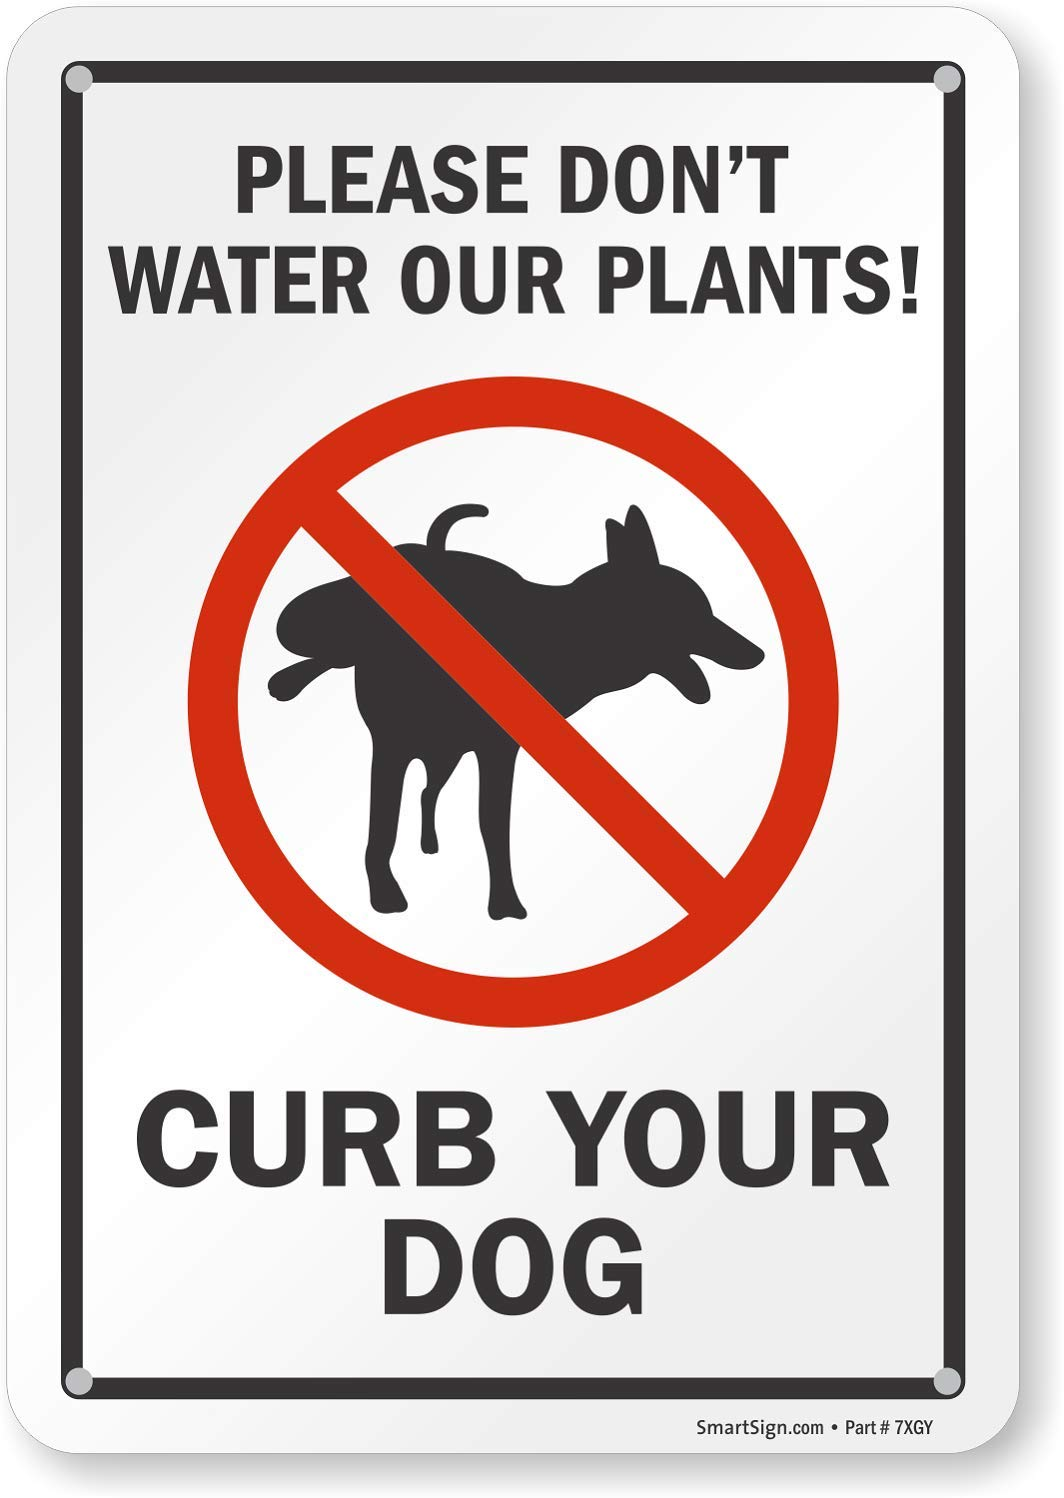 Curb Your Dog with Graphic Black//Red on White SmartSign Plastic Sign LegendPlease Dont Water Our Plants 10 High X 7 Wide